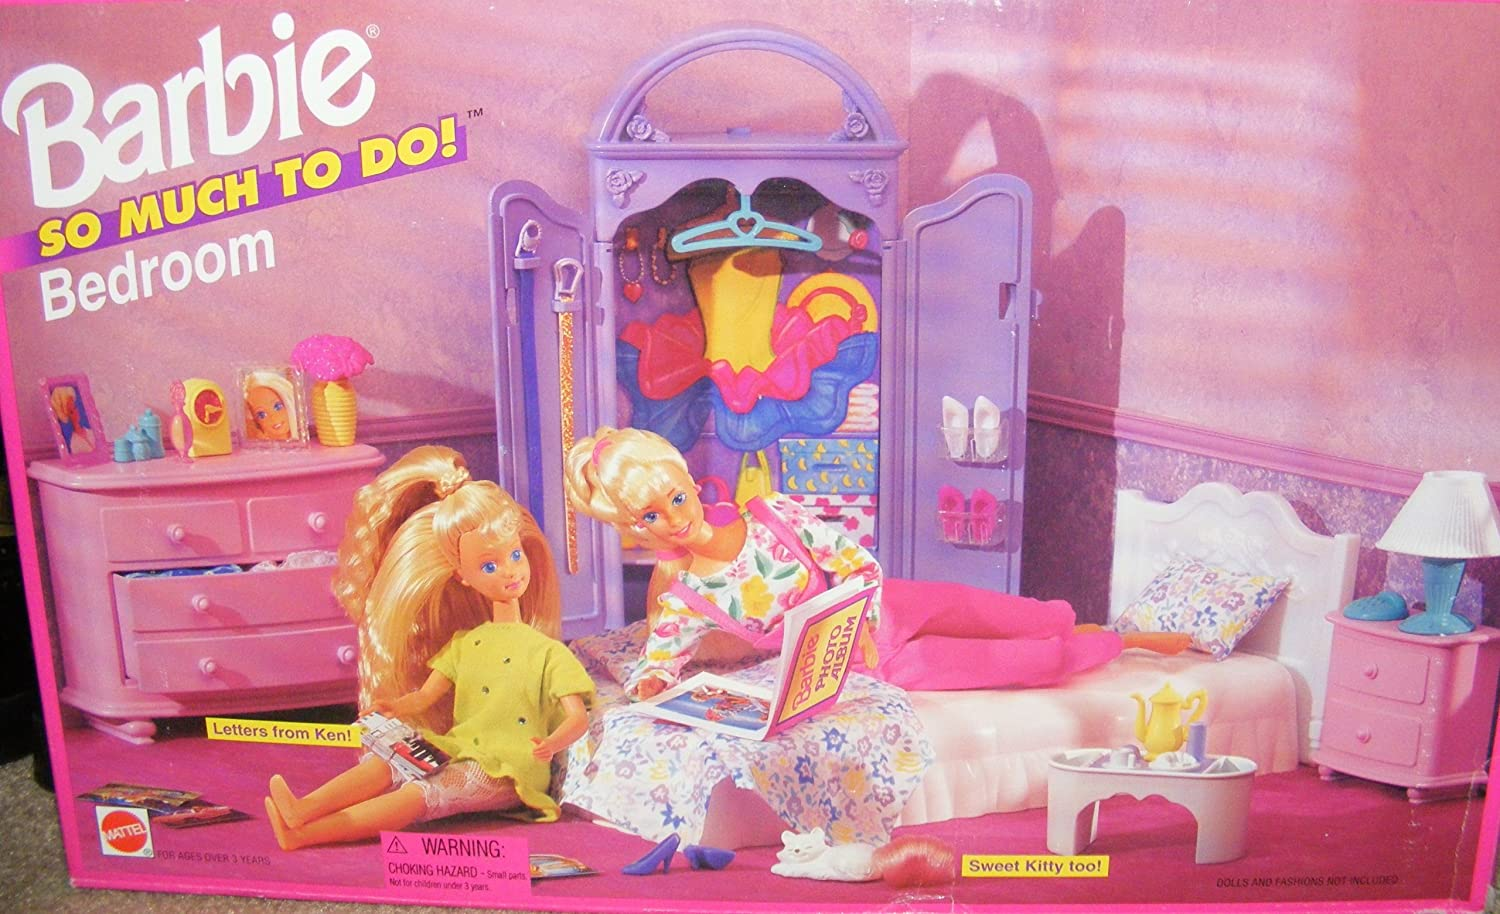 Barbie doll bedroom set - Amazon Com Barbie So Much To Do Bedroom Playset 1995 Retired Toys Games